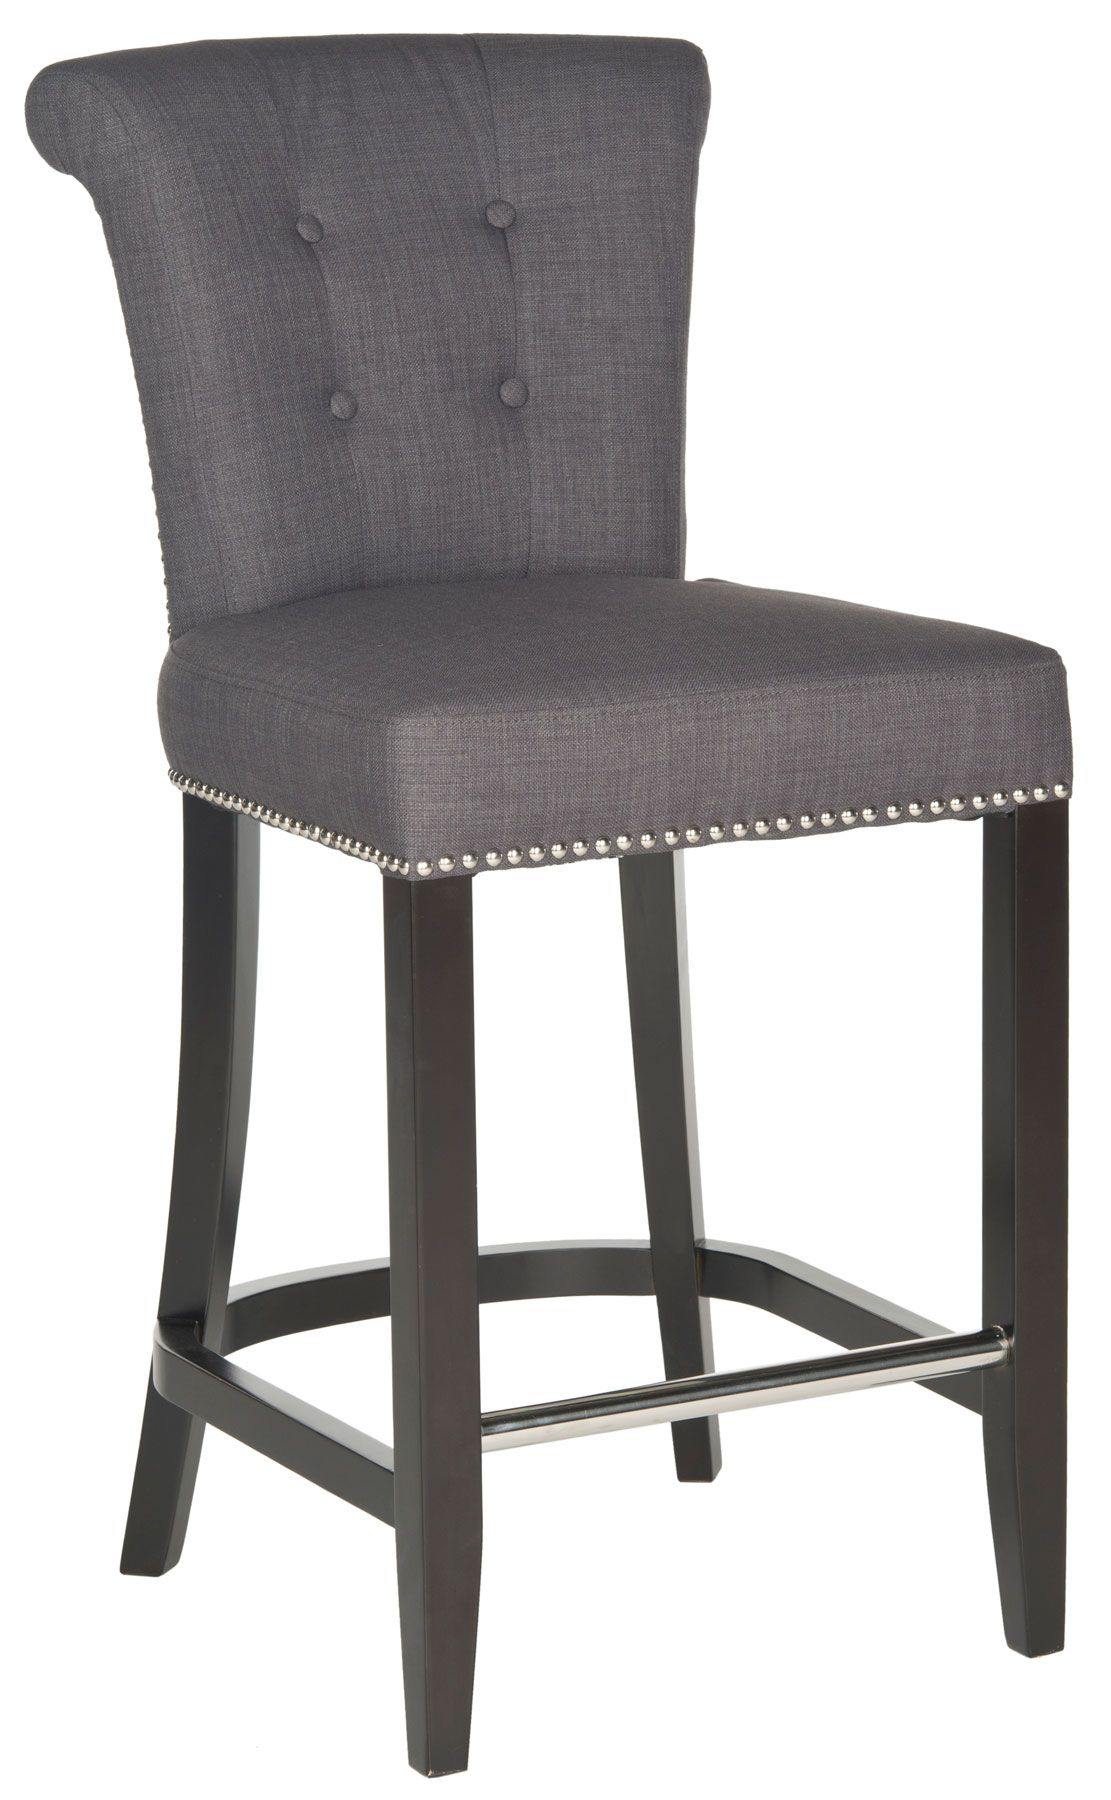 Hud8241a Counter Stools Furniture By Safavieh Bar Stools Counter Stools Furniture